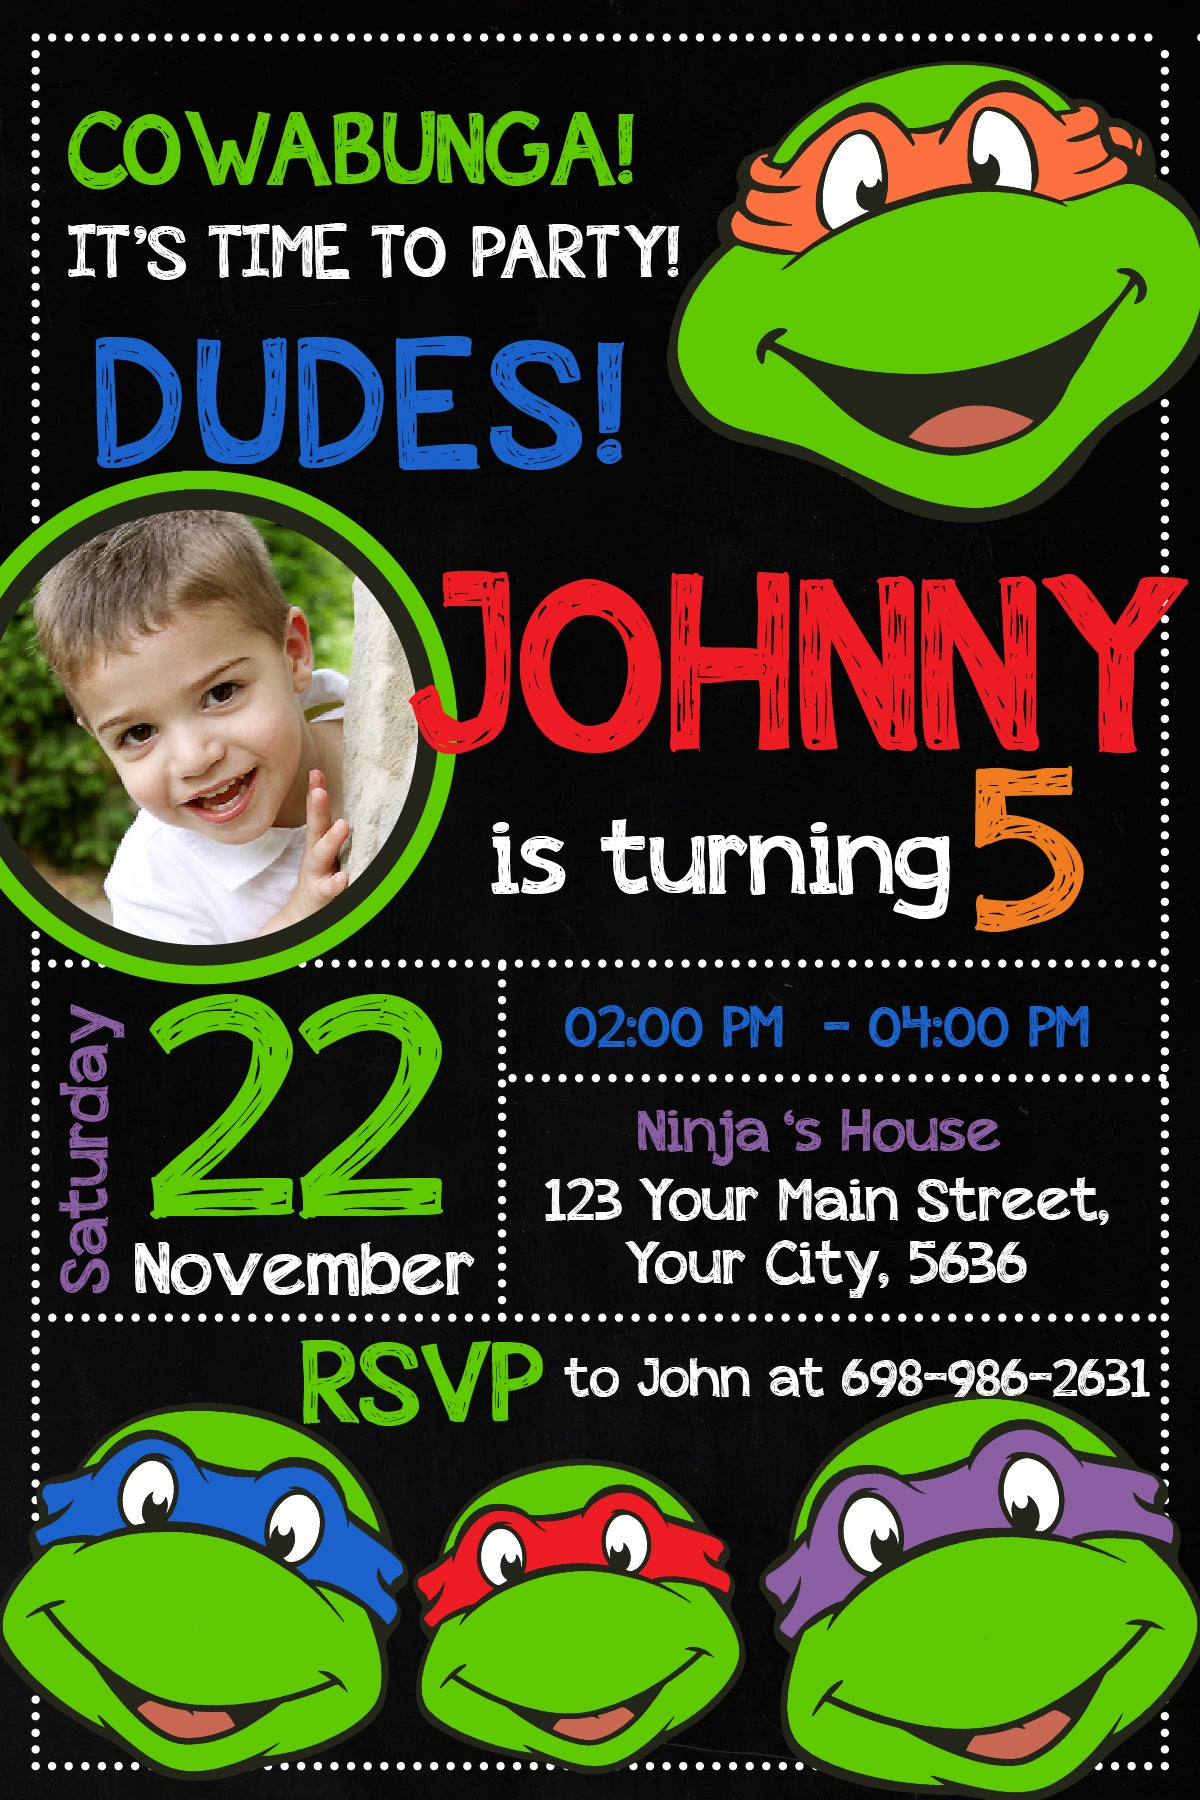 Ninja Turtles Invitation Ninja Turtles Invite Ninja Turtles